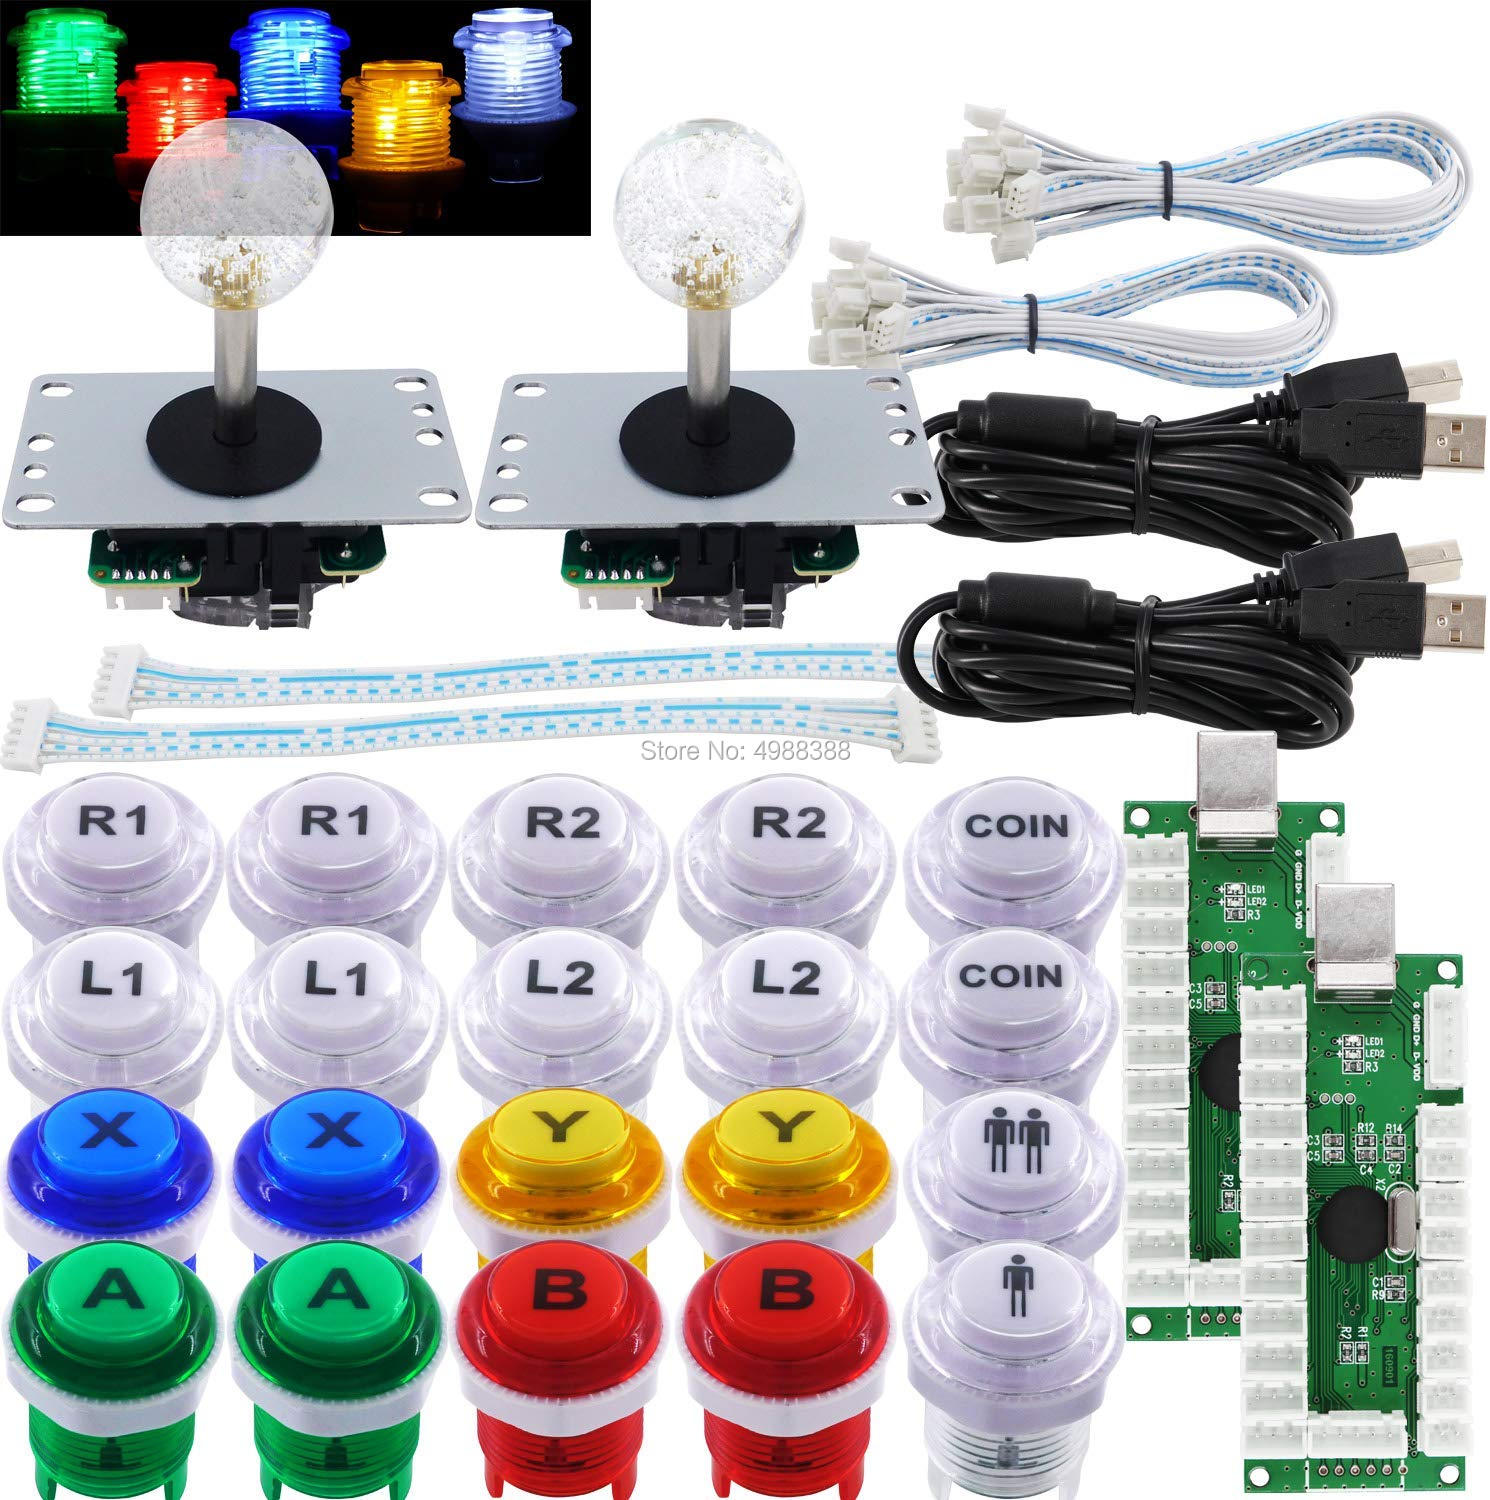 Arcade joystick pc 2 Player DIY Kit LED Buttons Microswitch 8 Way Joystick USB Encoder Cable for PC MAME Raspberry Pi